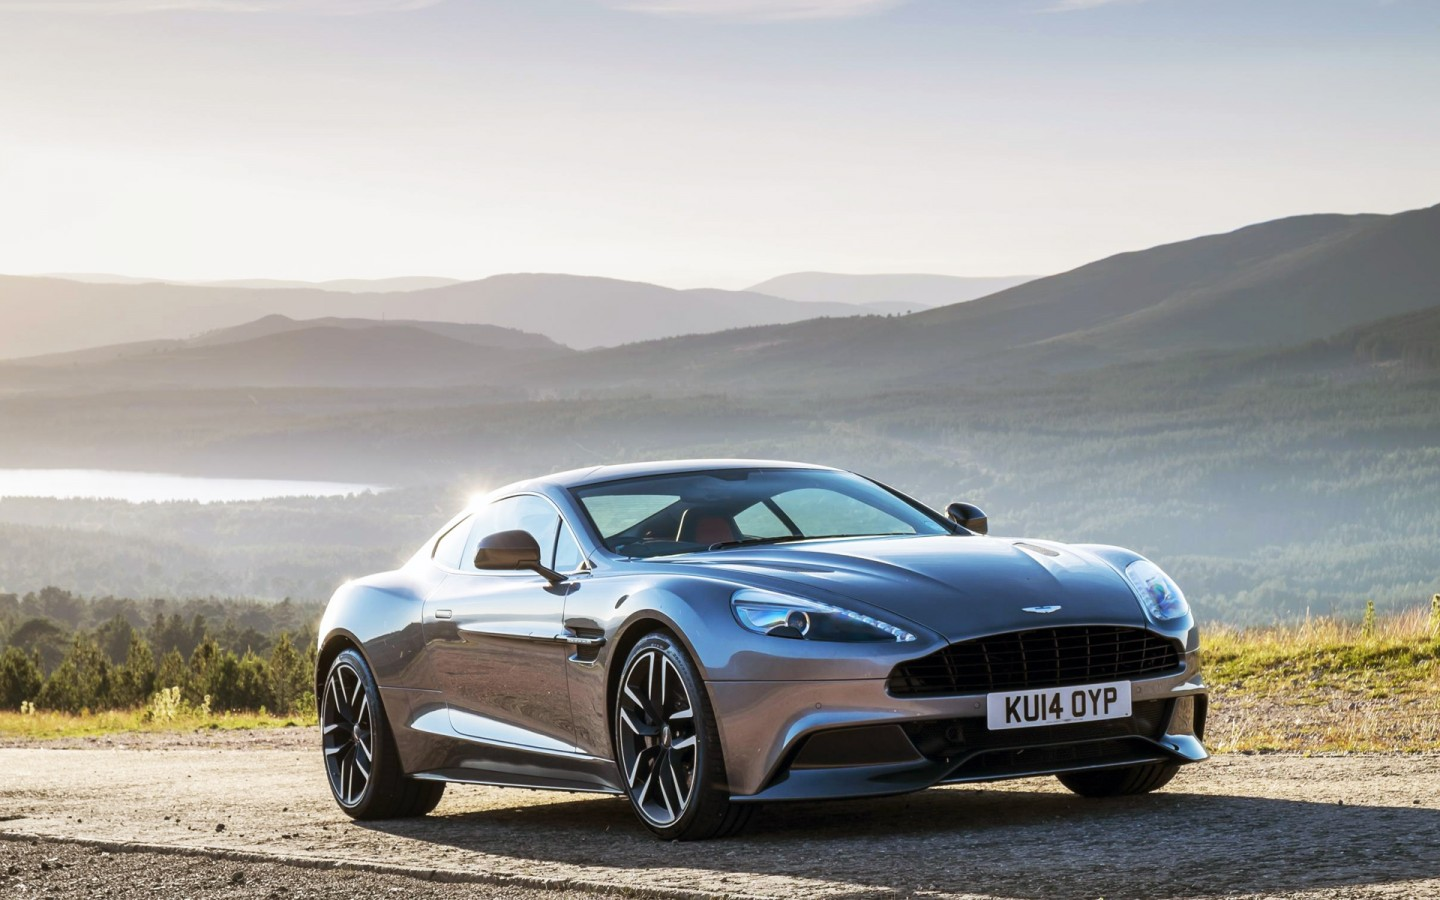 2015 aston martin vanquish wallpaper hd car wallpapers id 4690. Black Bedroom Furniture Sets. Home Design Ideas